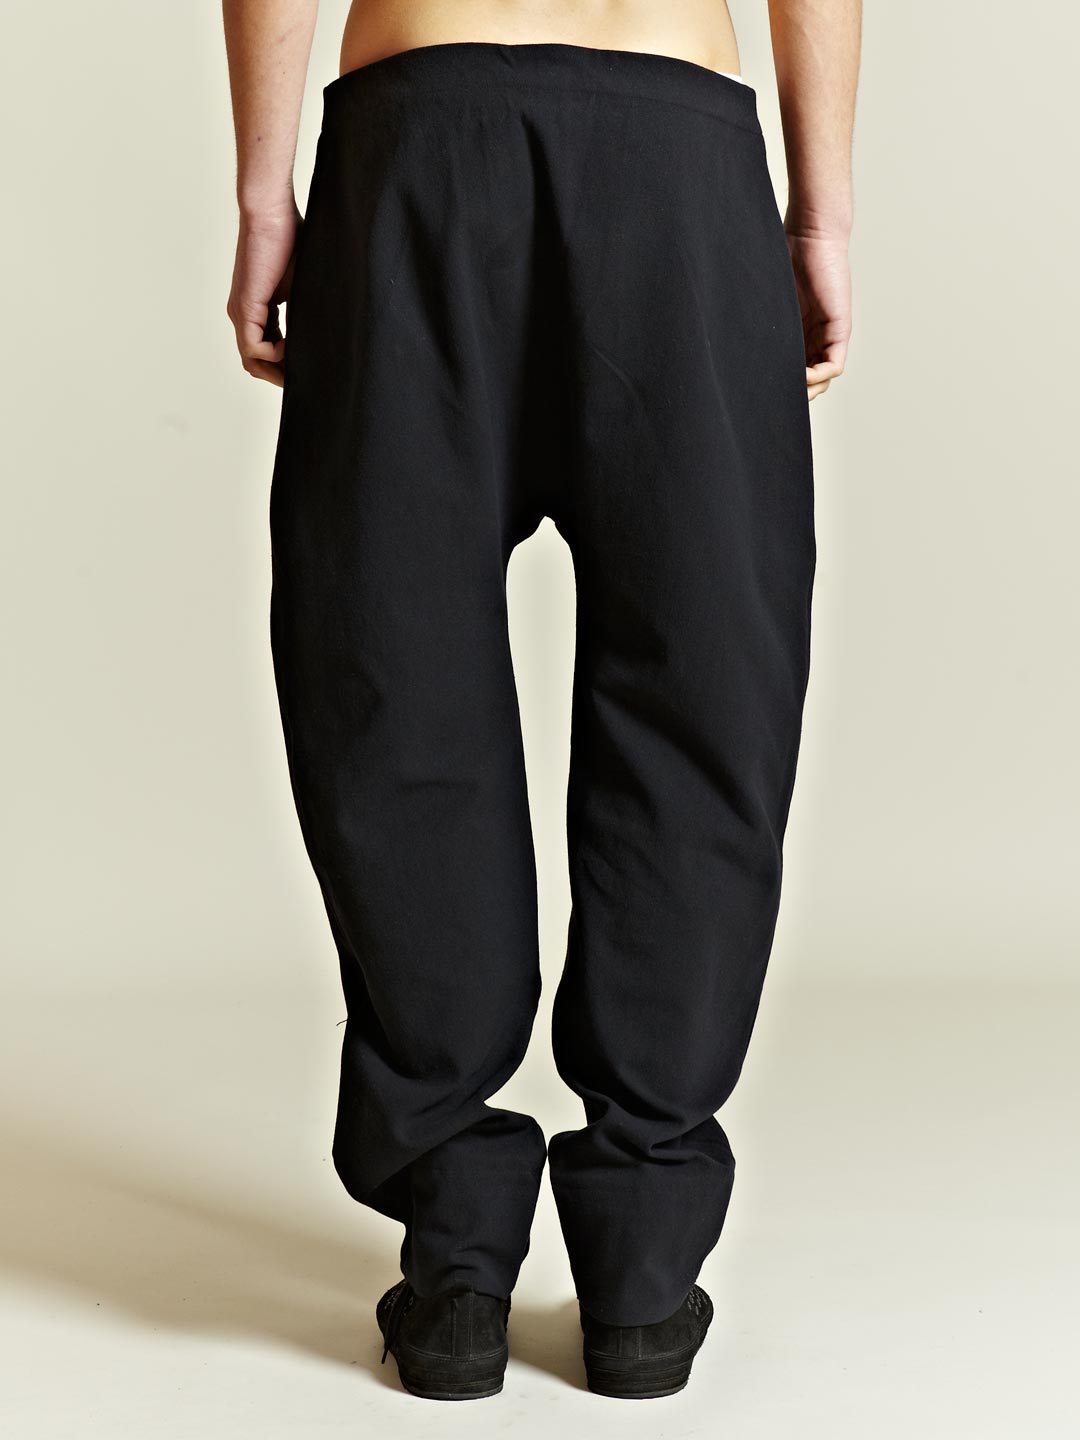 Marvielab Marvielab Mens Drop Crotch Pants In Black For